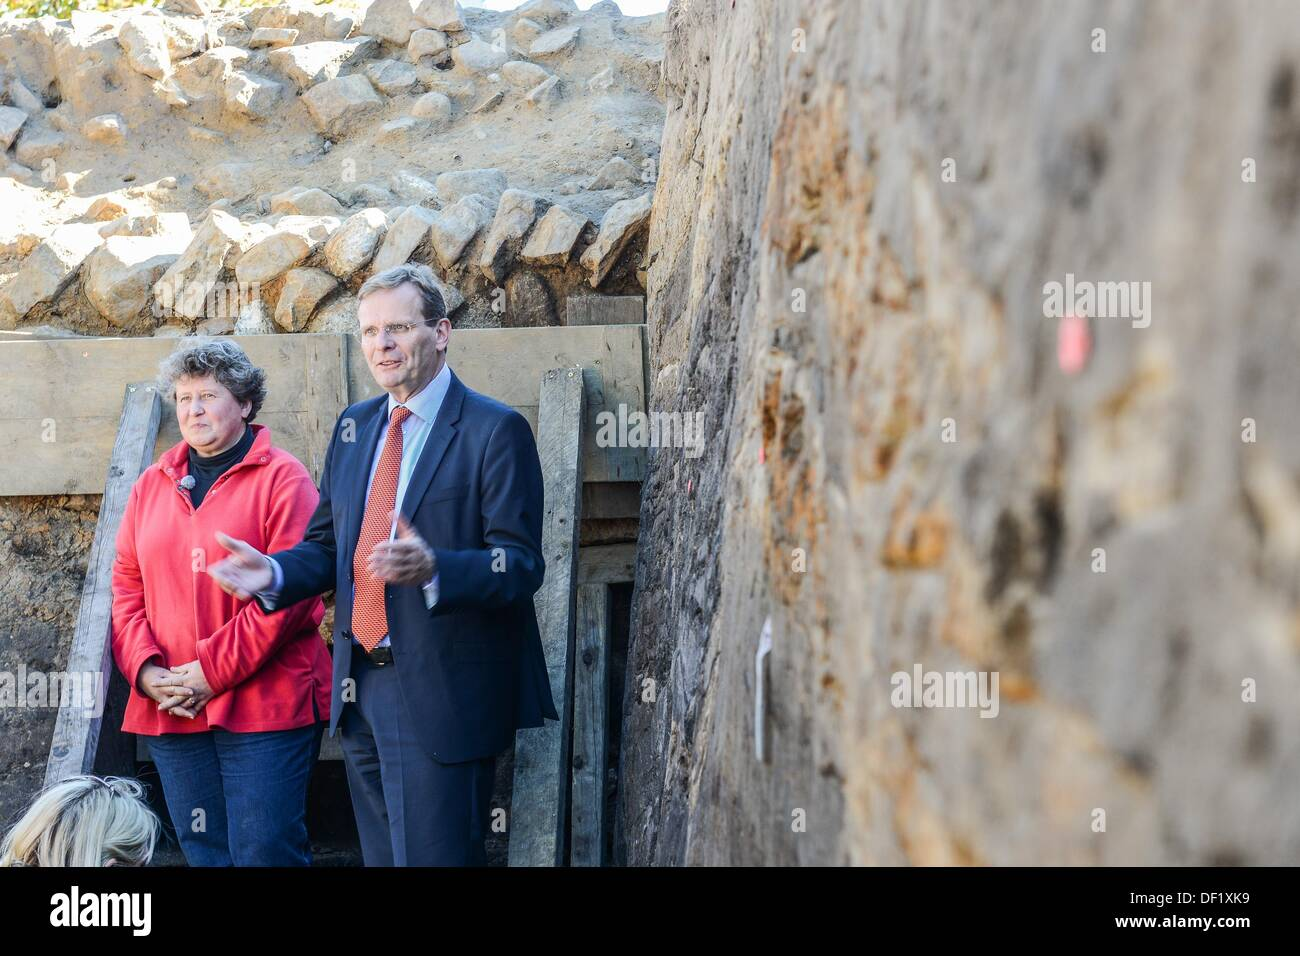 The managing archaeologist, Astrid Tummuscheit, and the director of the Archaeological State Office of Schleswig-Holstein, Claus von Carnap-Bornheim (R),  present a segment of the defensive wall of the the archaeological excavation site 'Danewerk' in Dannewerk, Germany, 26 September 2013. The presentation showed a complete cross-section of the early mediaevil defensive wall including archaeological findings of one of northern Europe's largest archaeological heritage sites, which date back to 540 AD. Photo: Benjamin Nolte - Stock Image